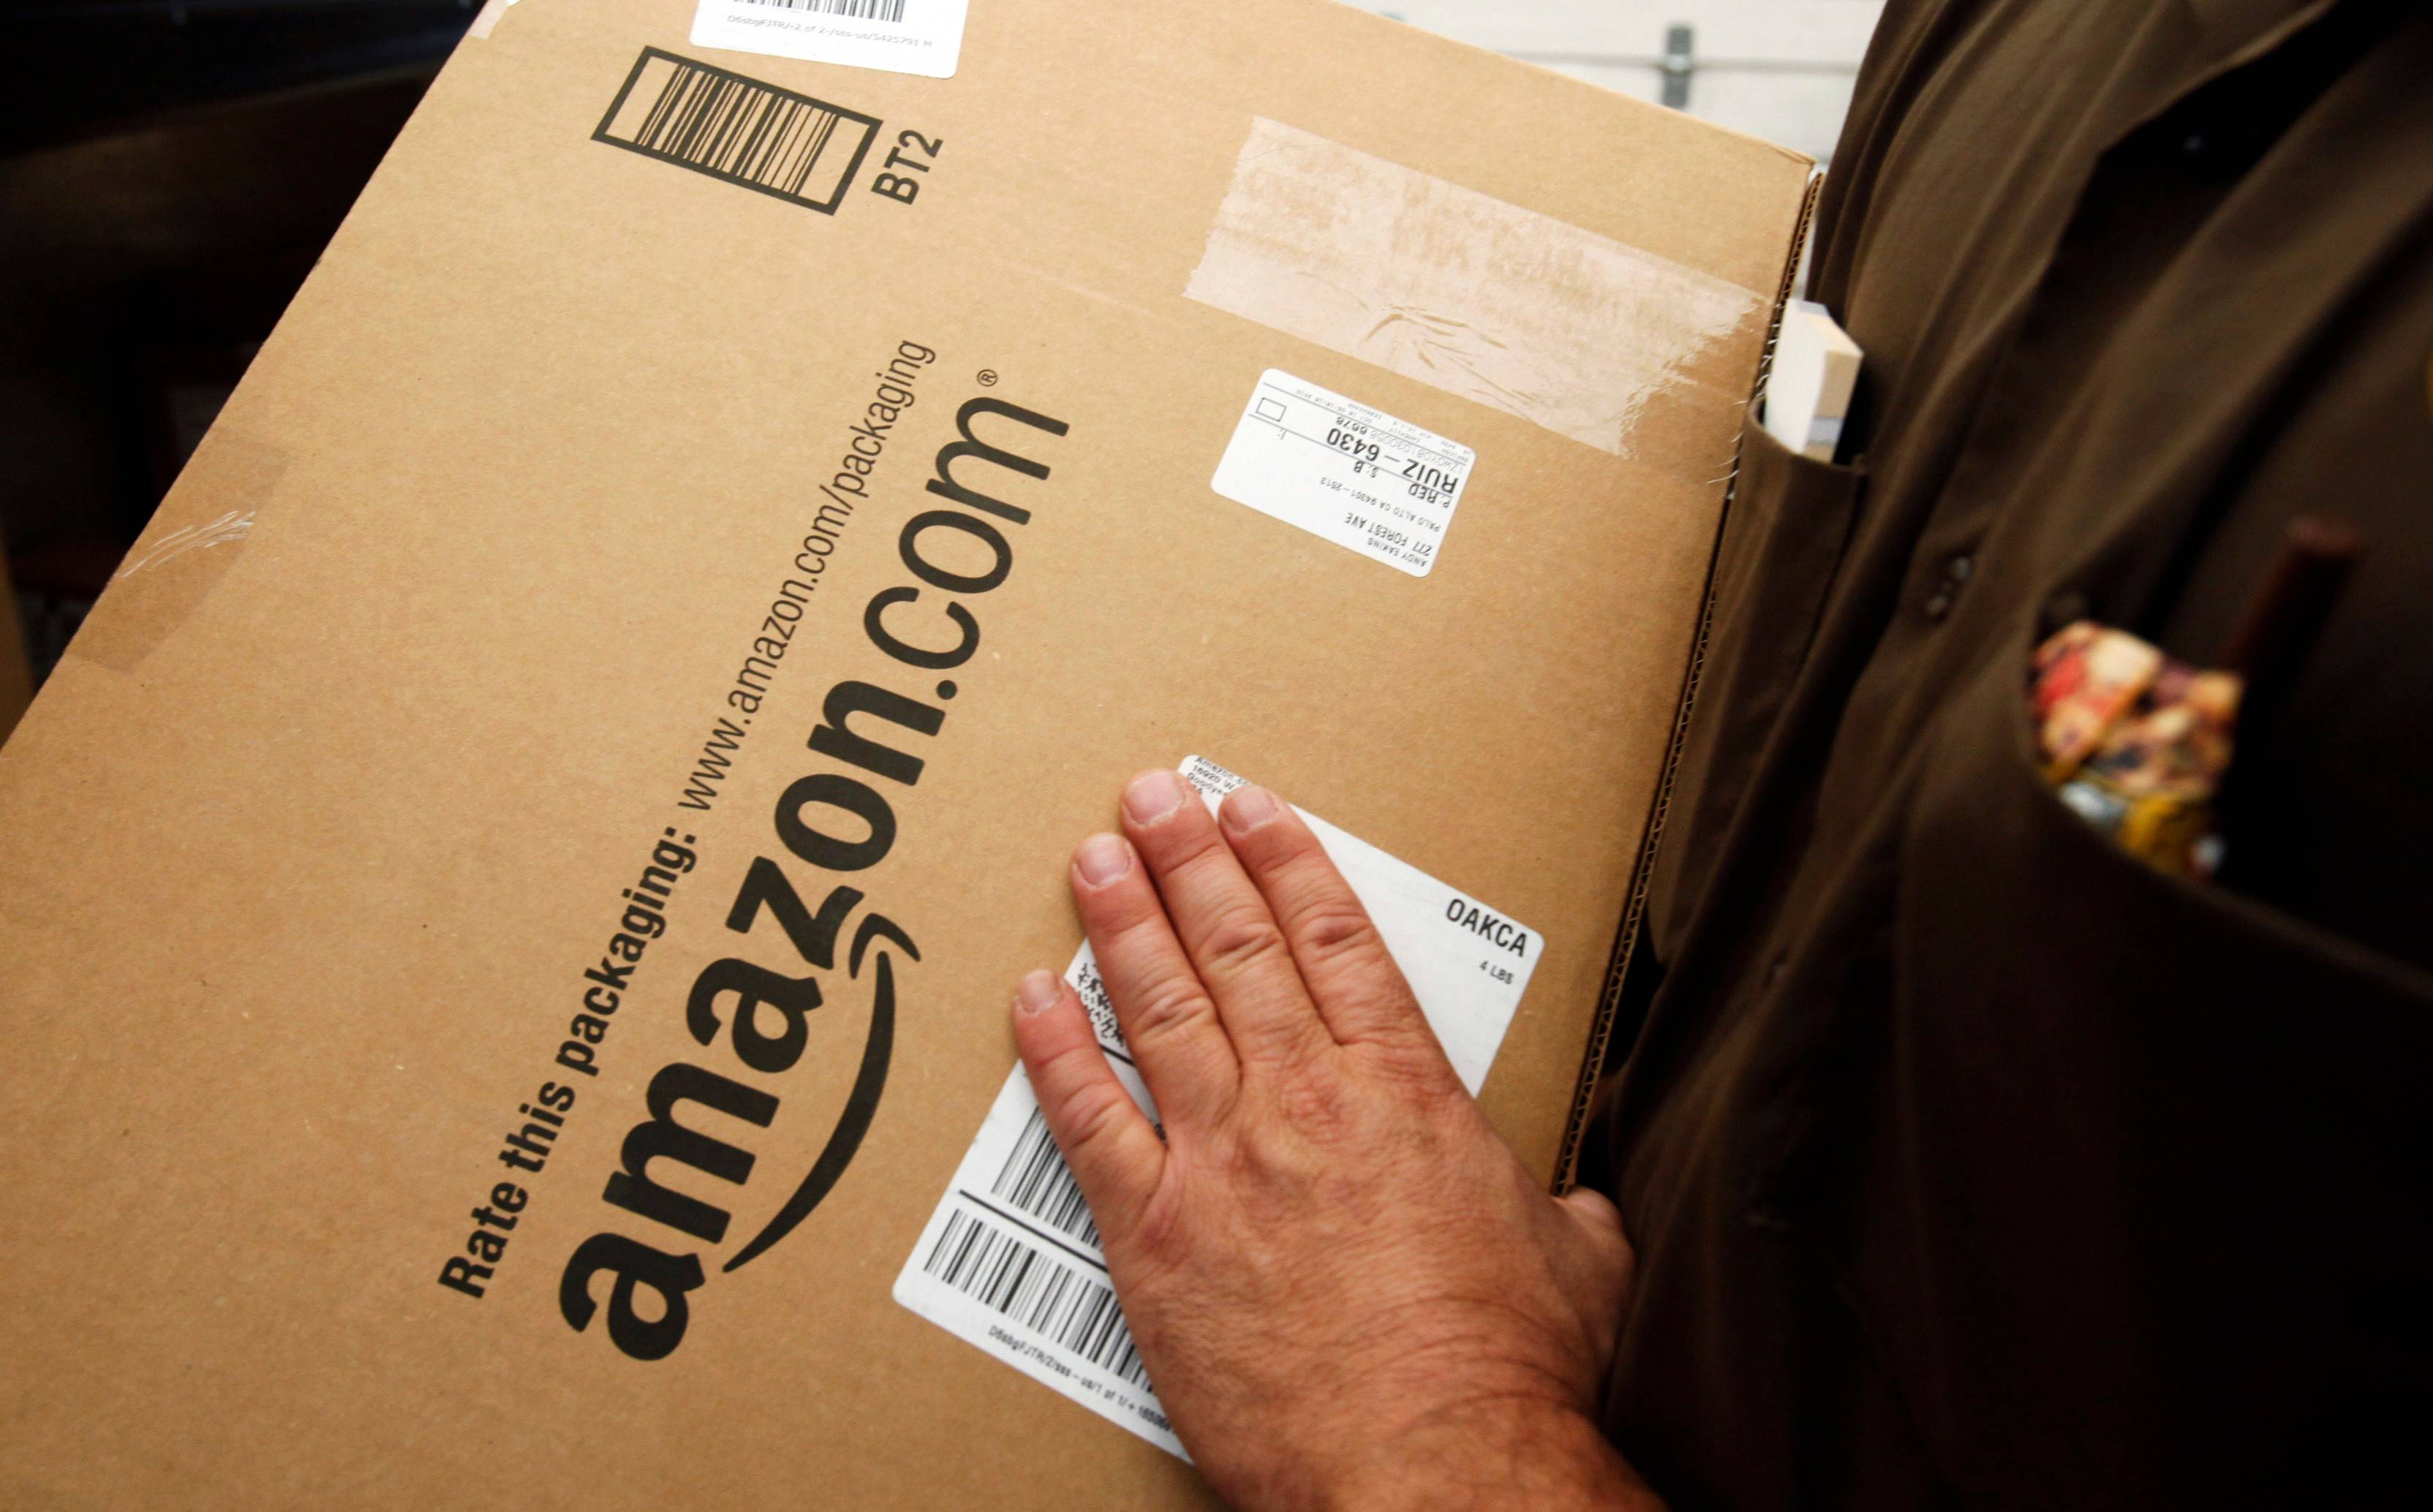 Amazon.com is giving special privileges to companies that sell their wares directly through its online store, according to a new study.